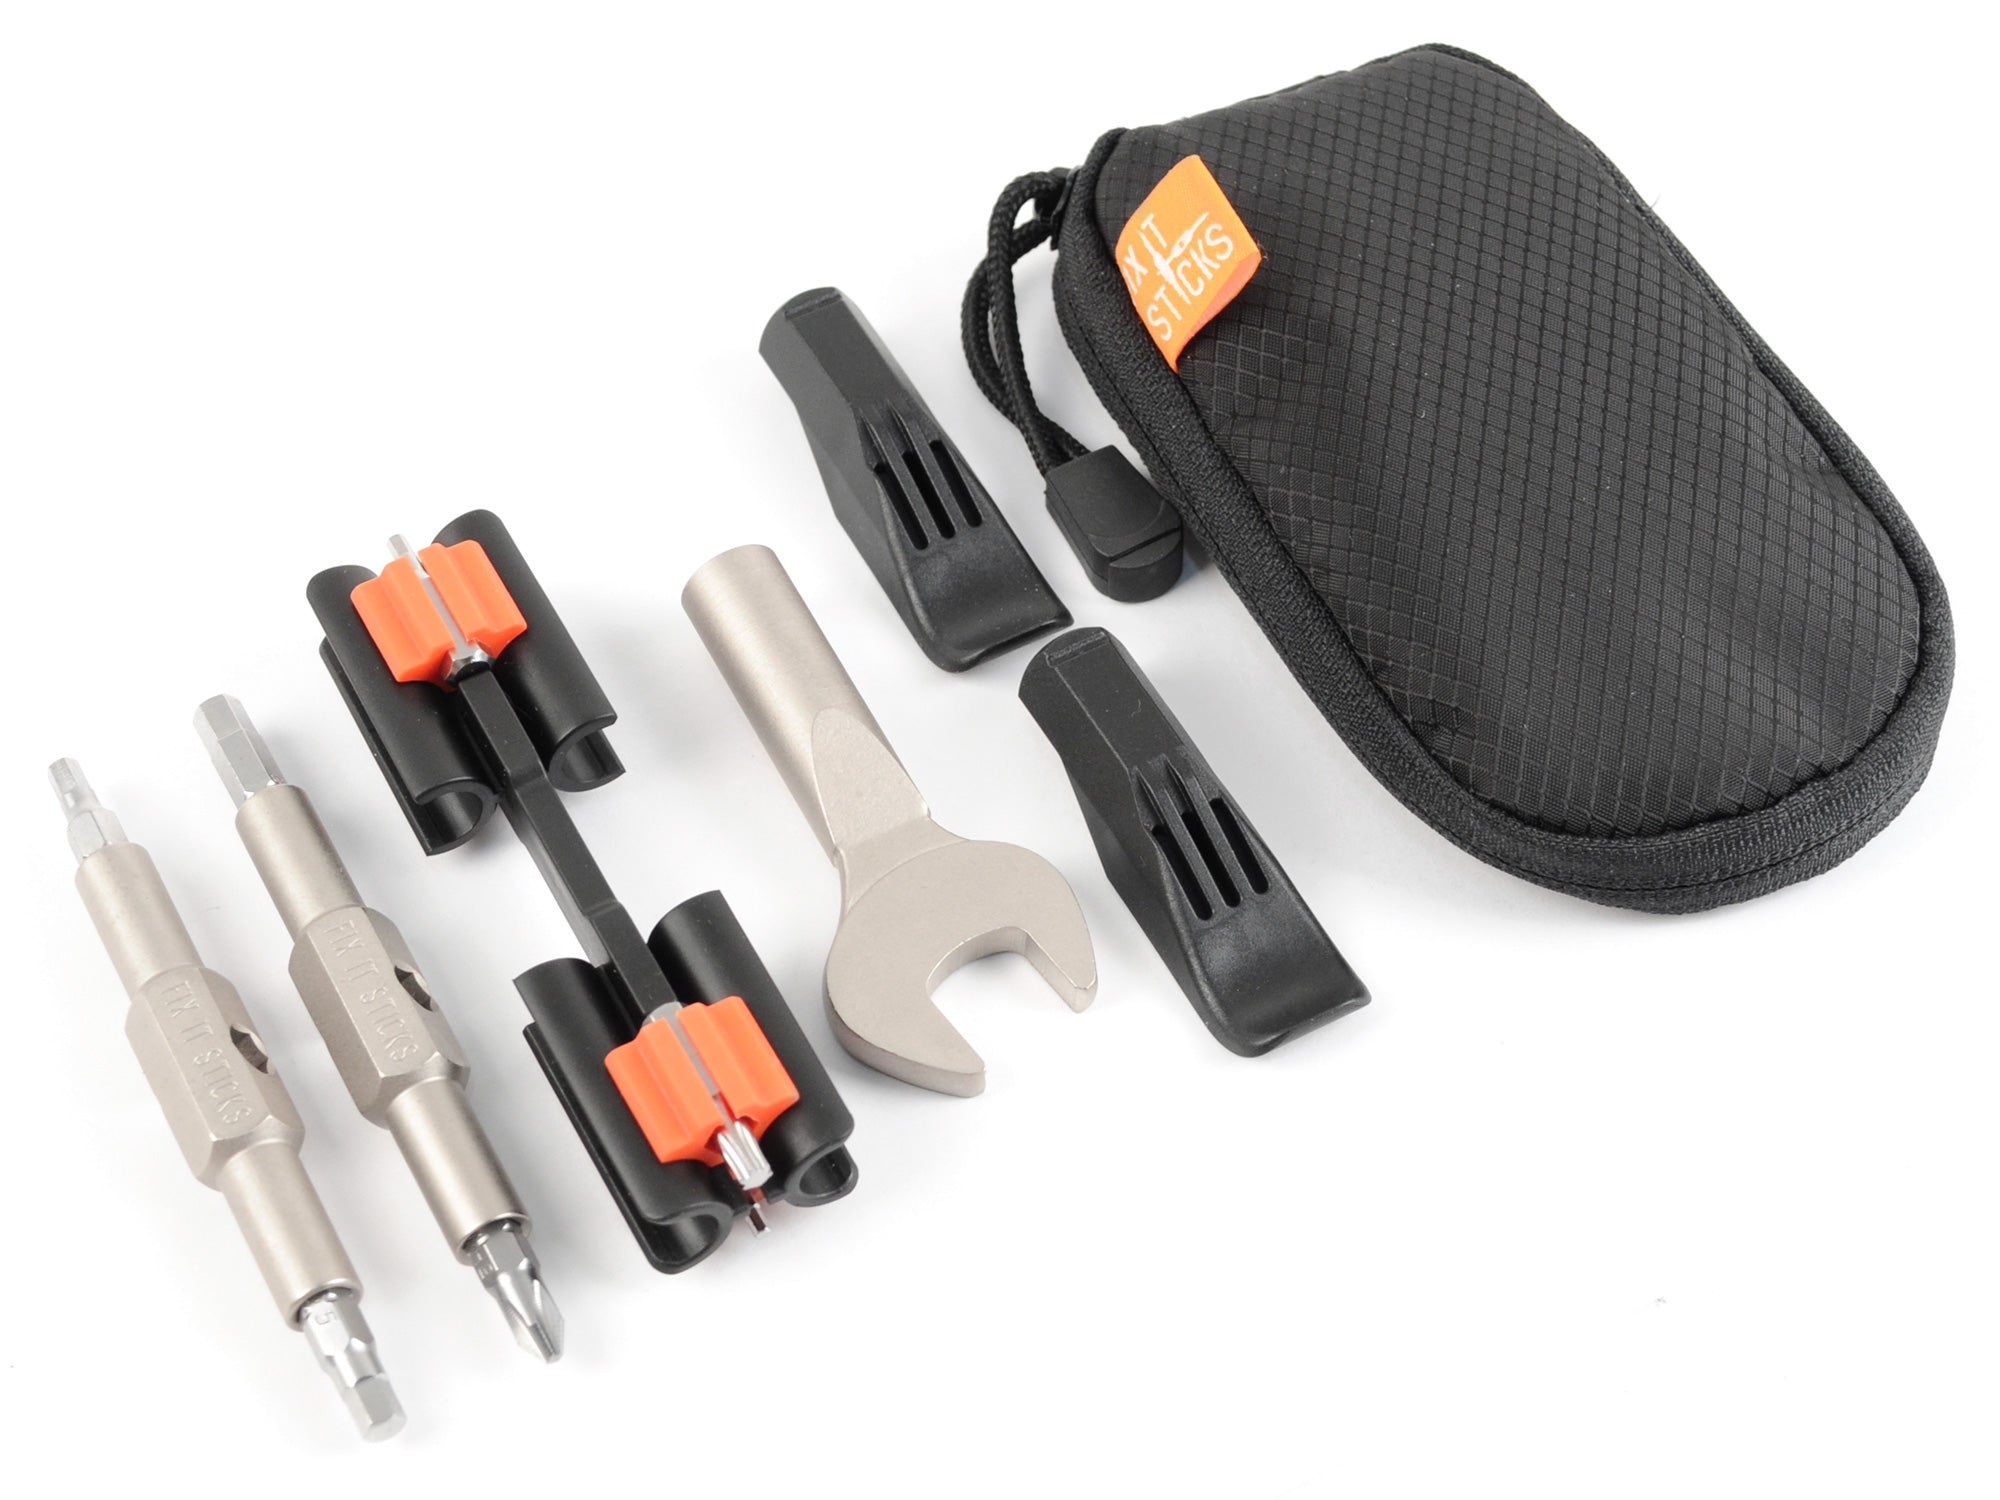 [Buy Unique Multi Tool Kits Online] - Fix It Sticks